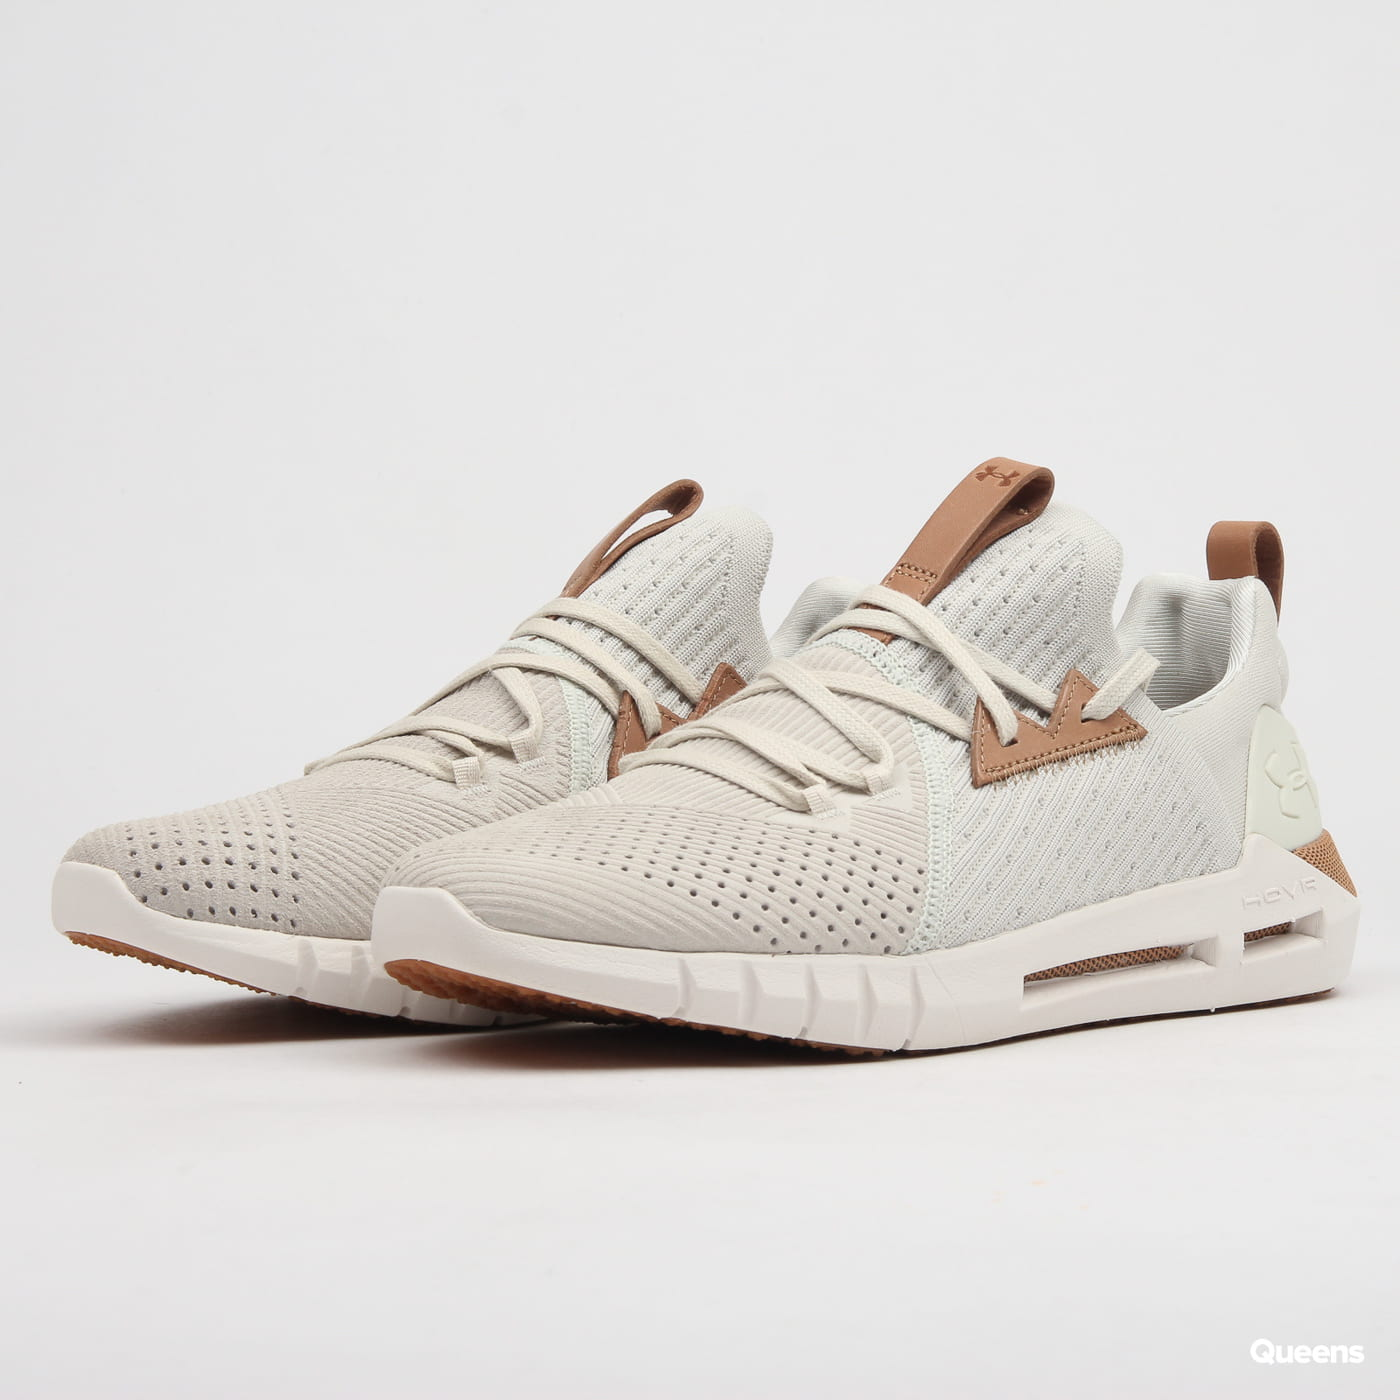 a7296334 Under Armour HOVR SLK EVO Perf Suede wht